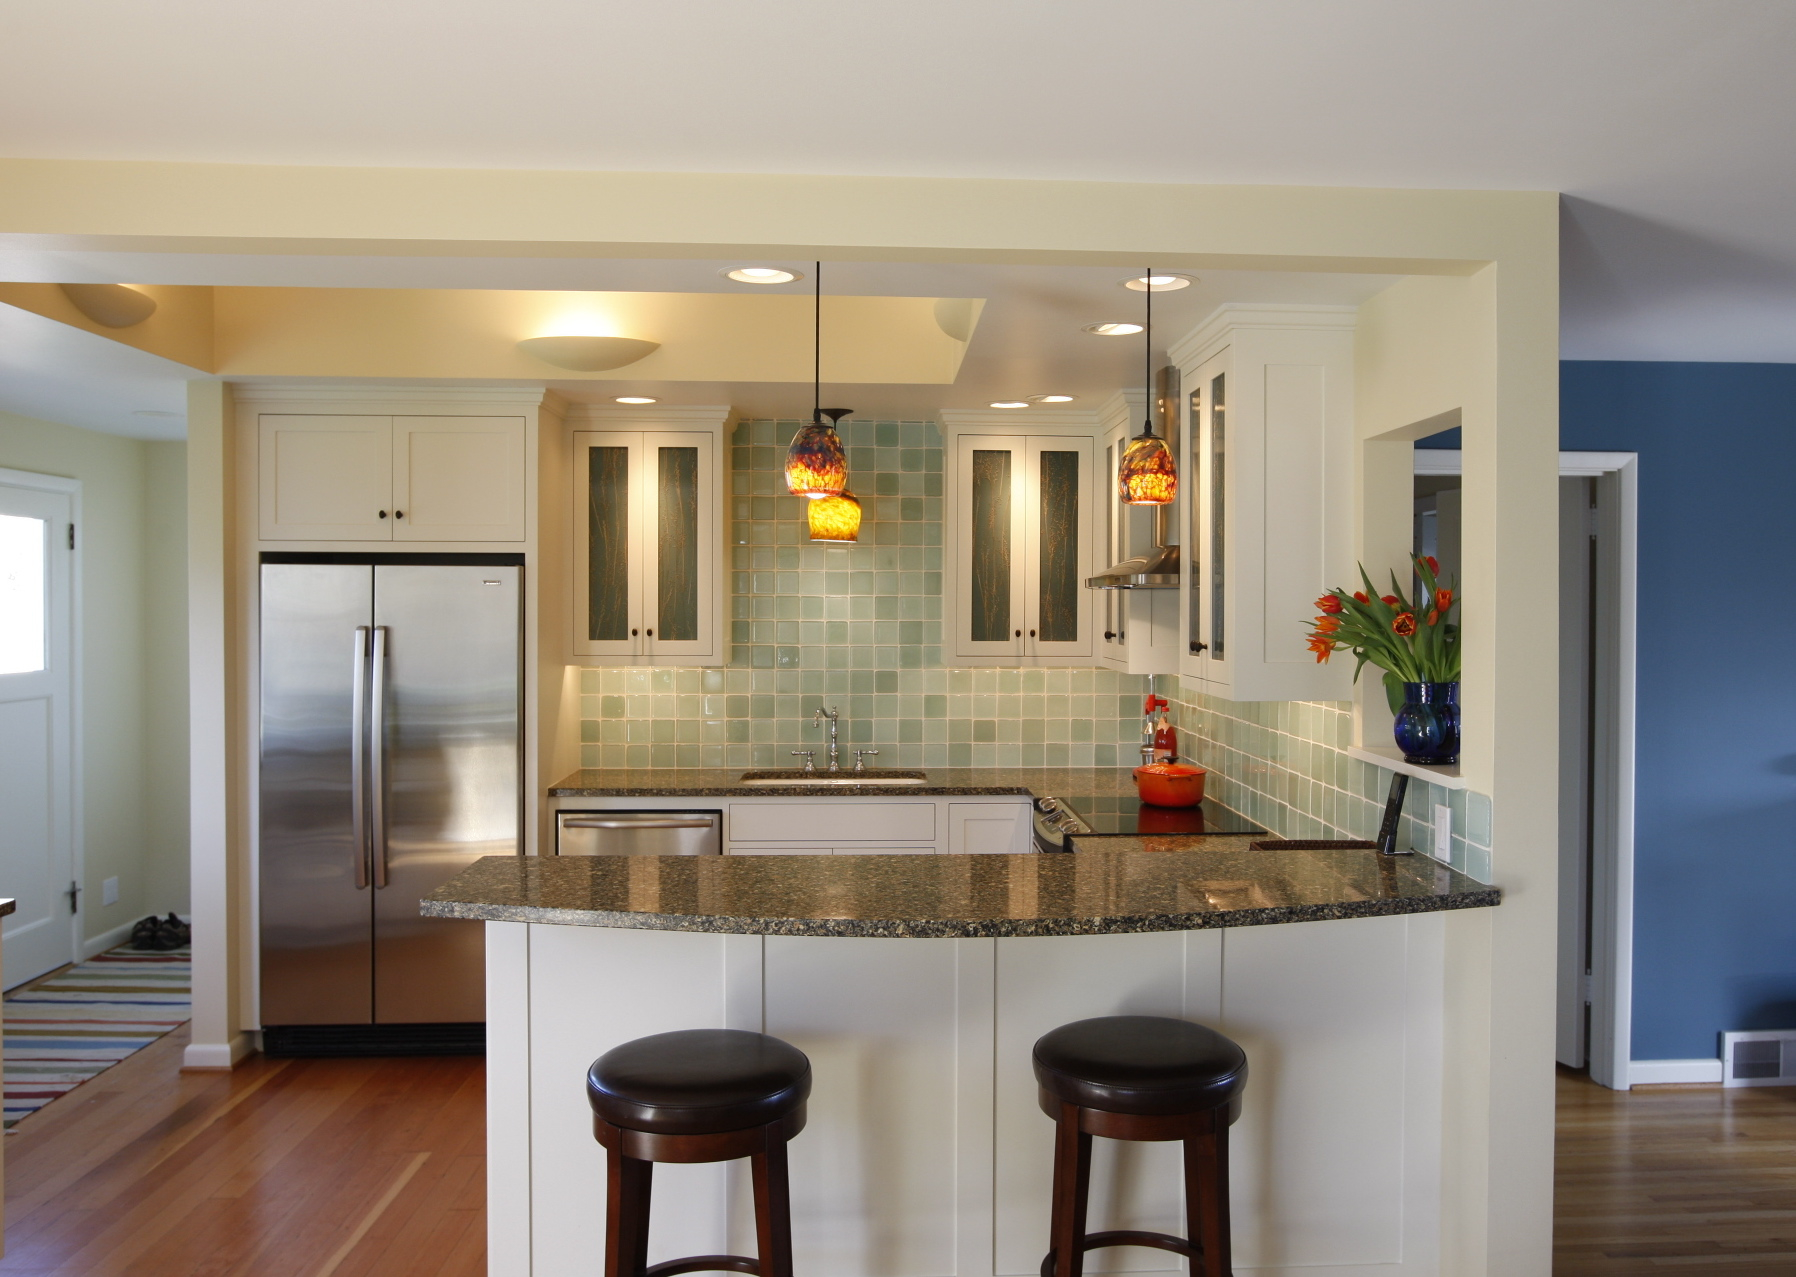 Family kitchen architecture